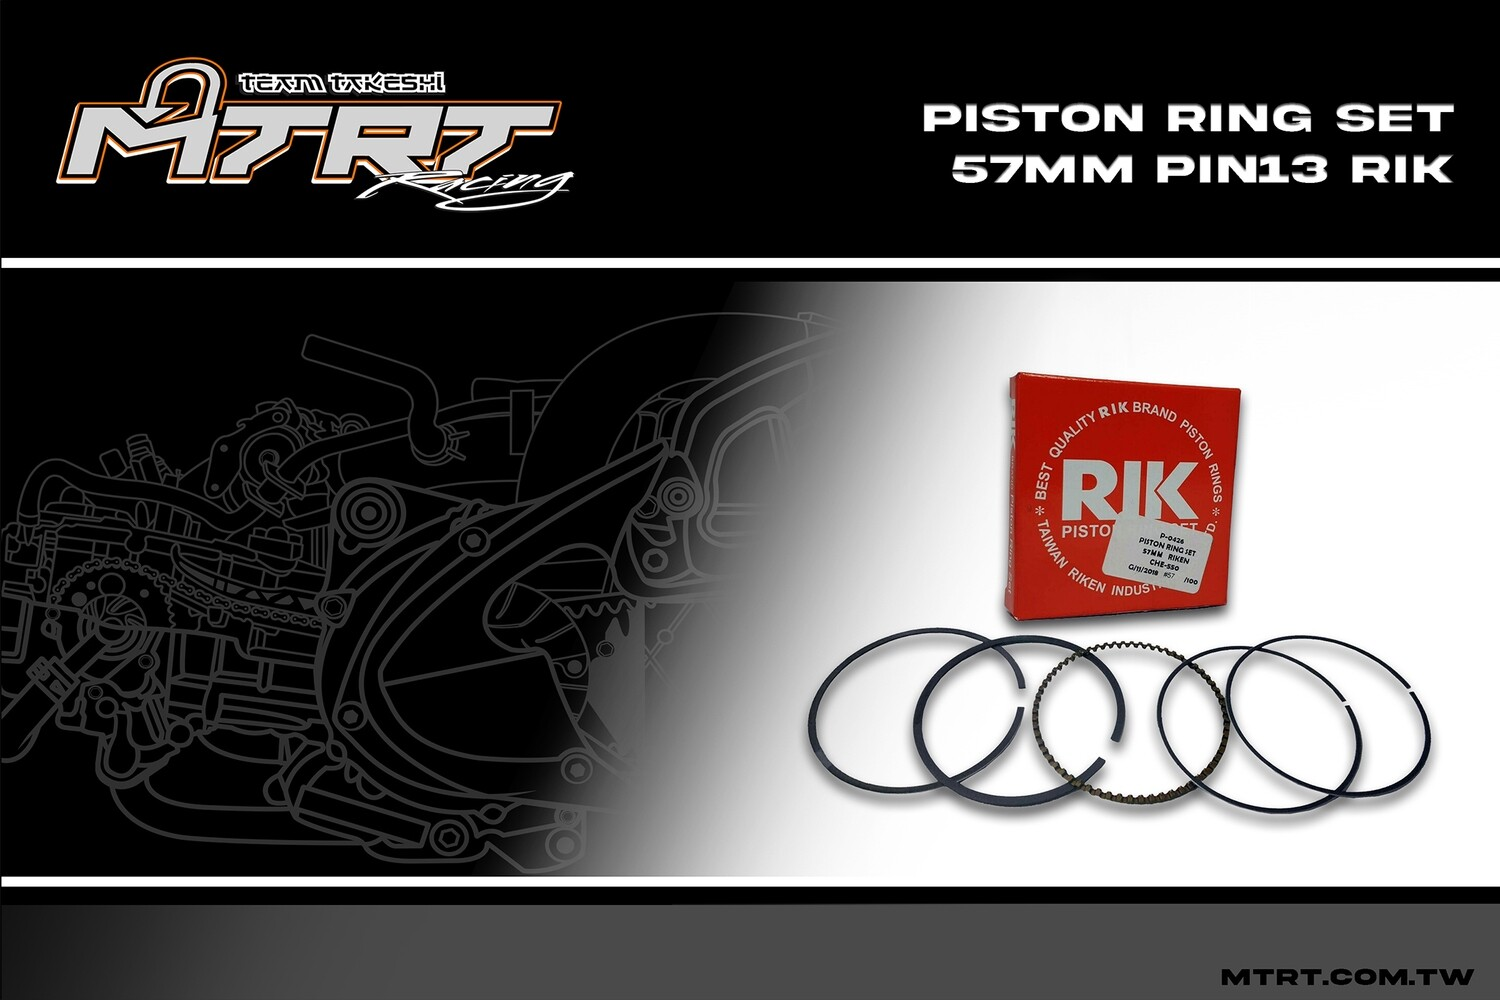 PISTON RING SET 57MM pin13 RIK